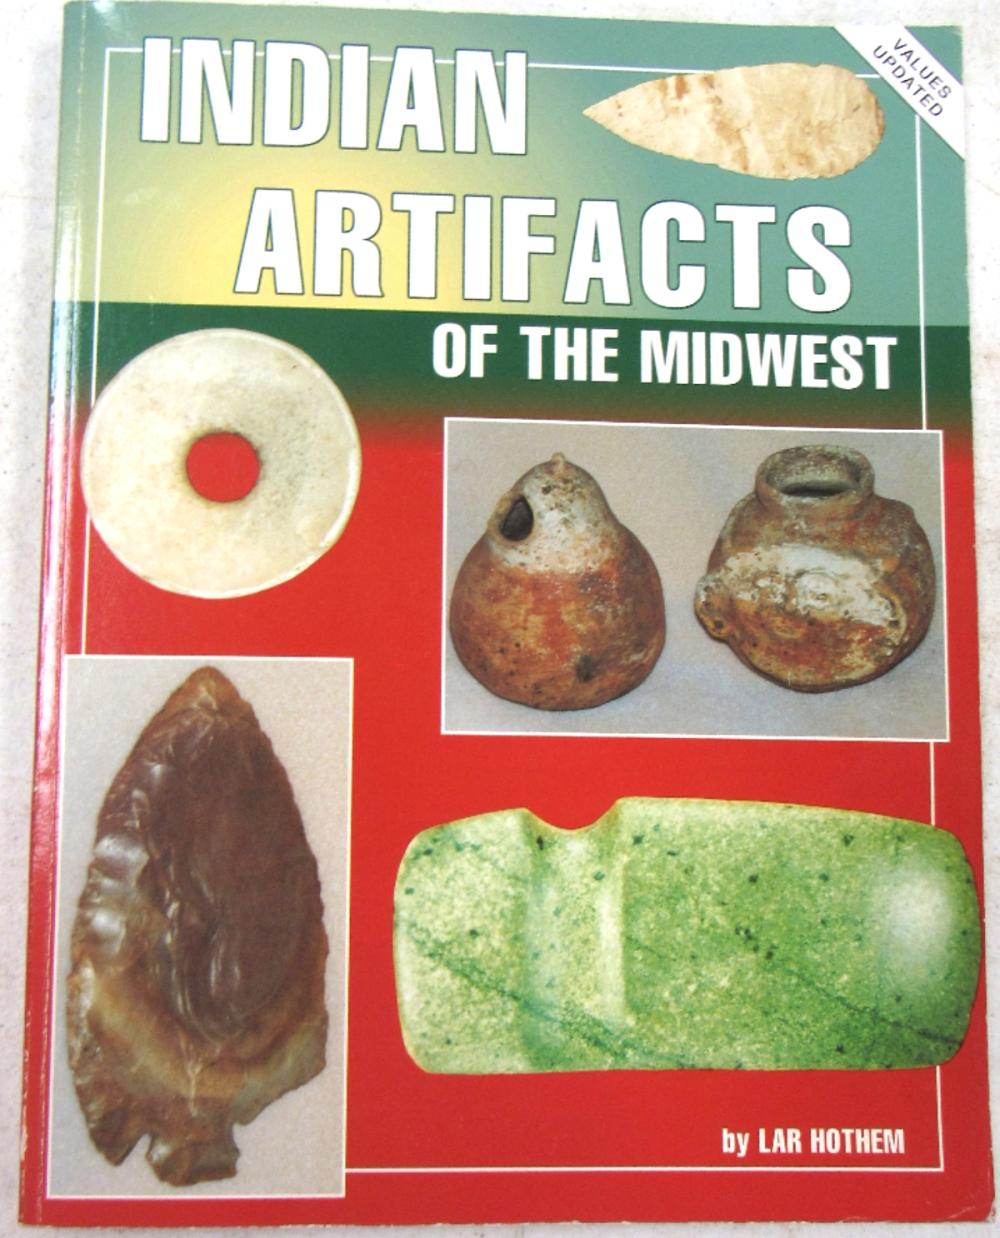 Indian Artifacts of the Midwest by Lar Hothem, Soft Cover, 1996, EC